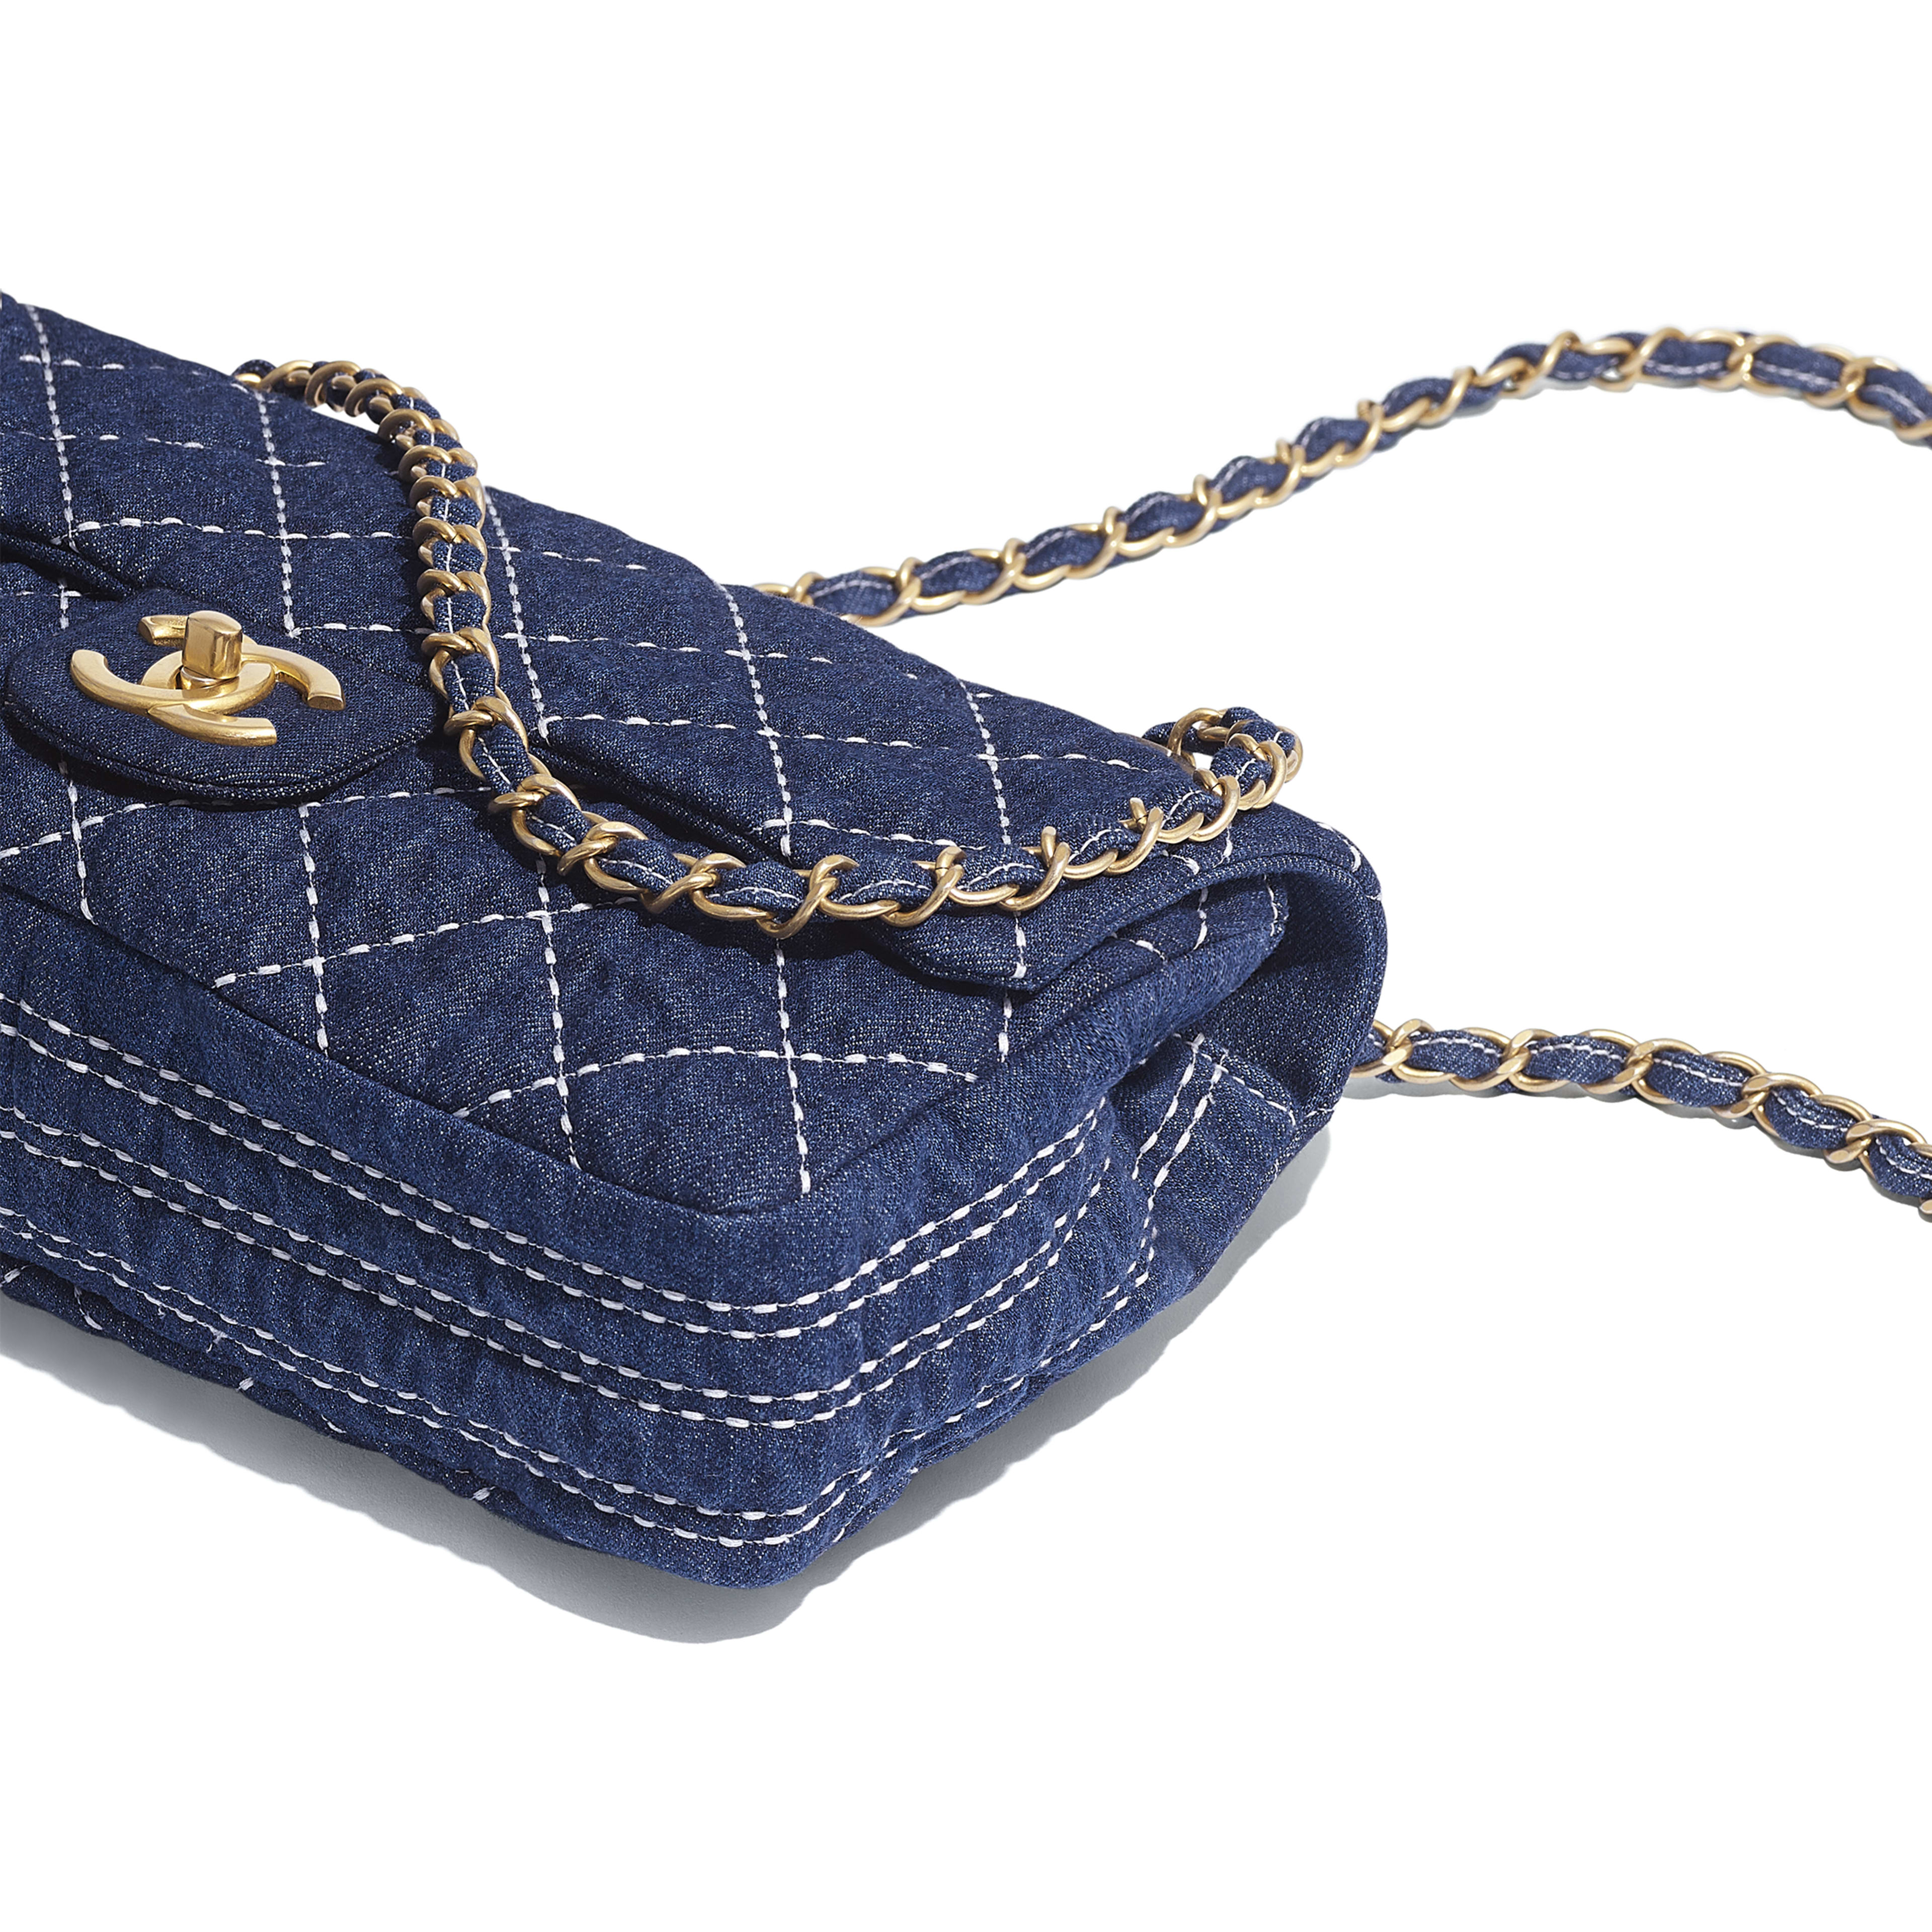 Flap Bag - Blue - Denim & Gold Metal - Extra view - see full sized version